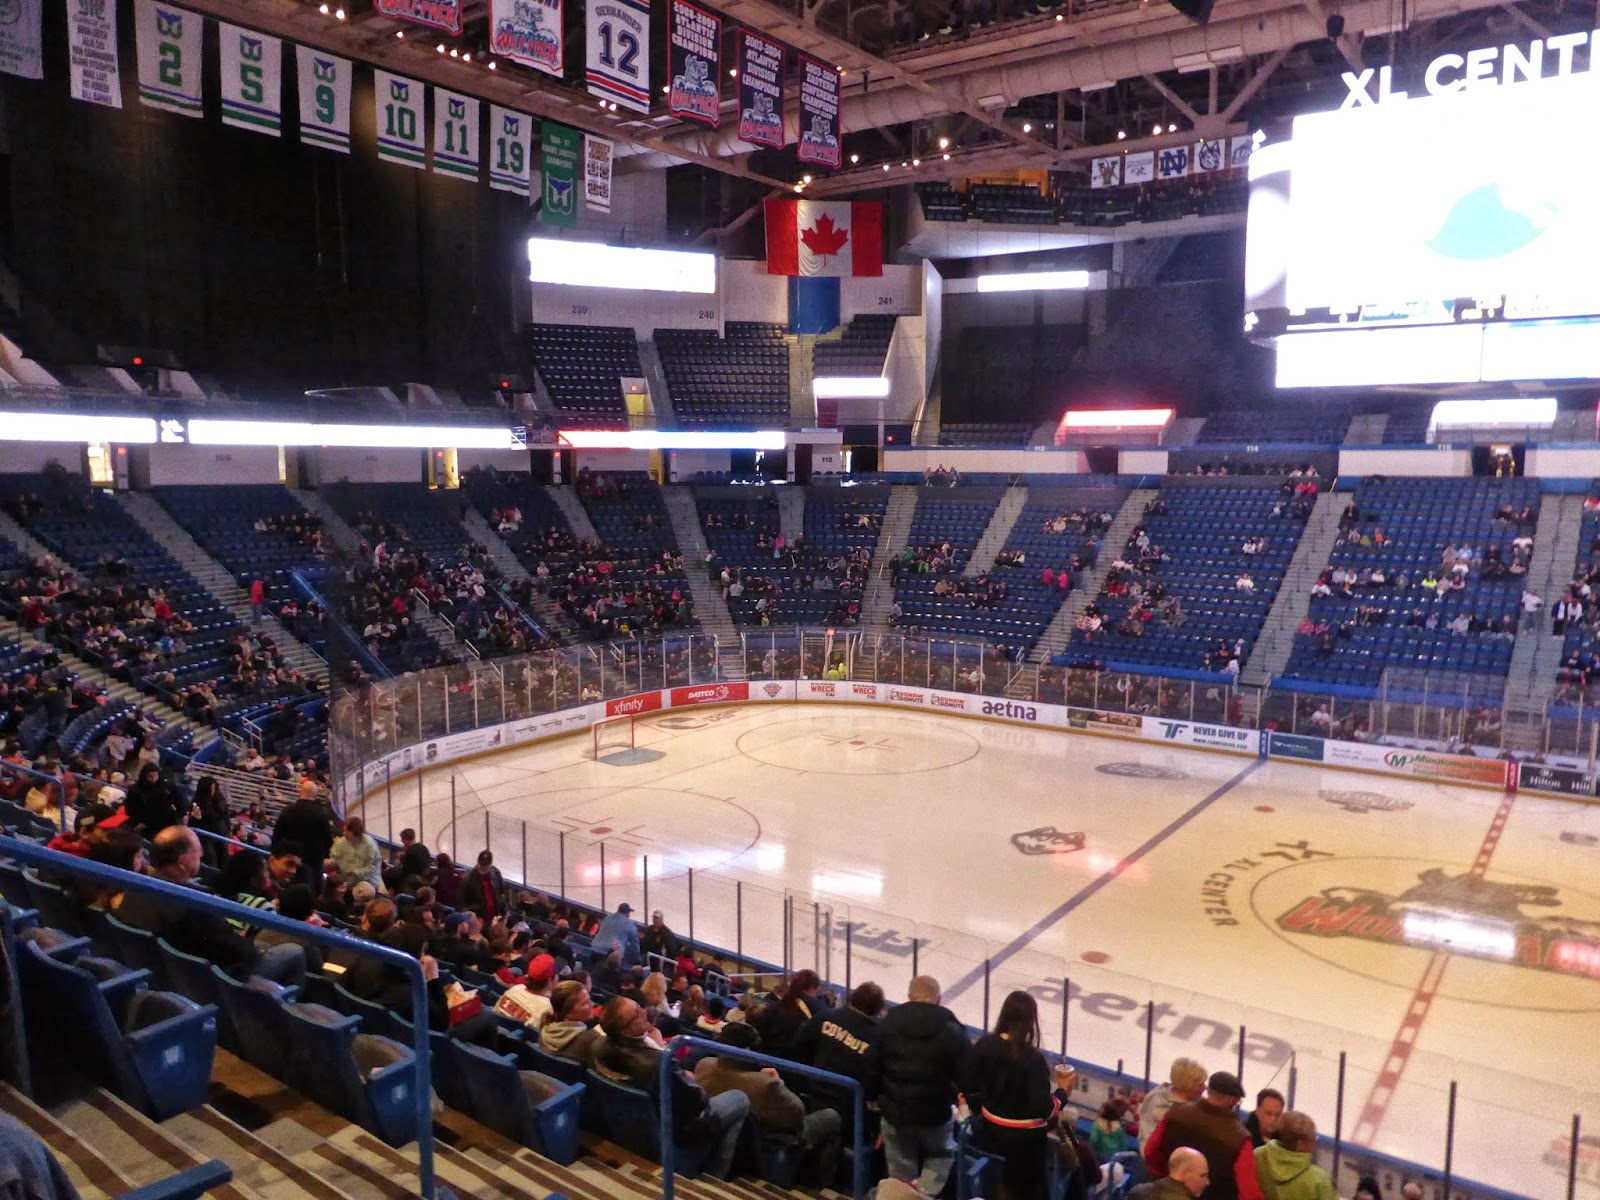 Xl center renovation updates hartford wolf pack - At The Latest That Would Be 2016 When The Hartford Yard Goats Begin Play In The Eastern League